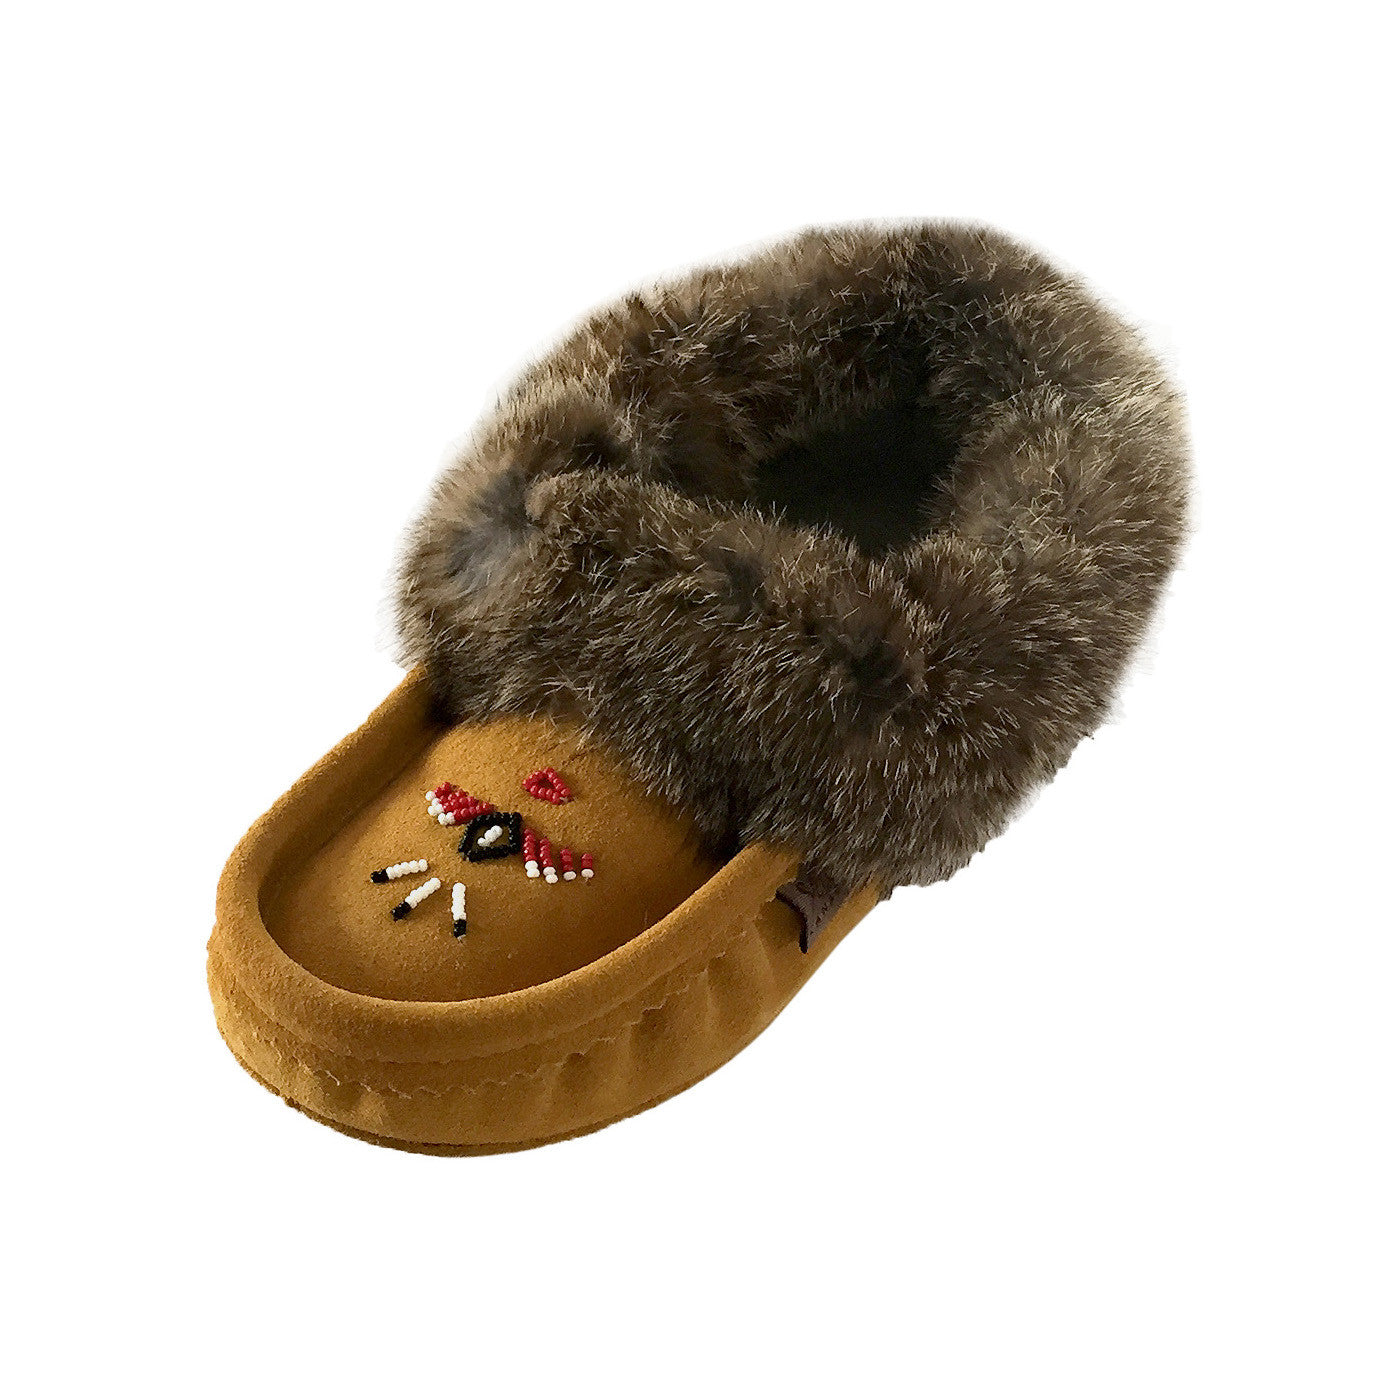 ce433e72892 Womens Hand Beaded Moccasin Slippers with Real Fuzzy Rabbit Fur Trim ...